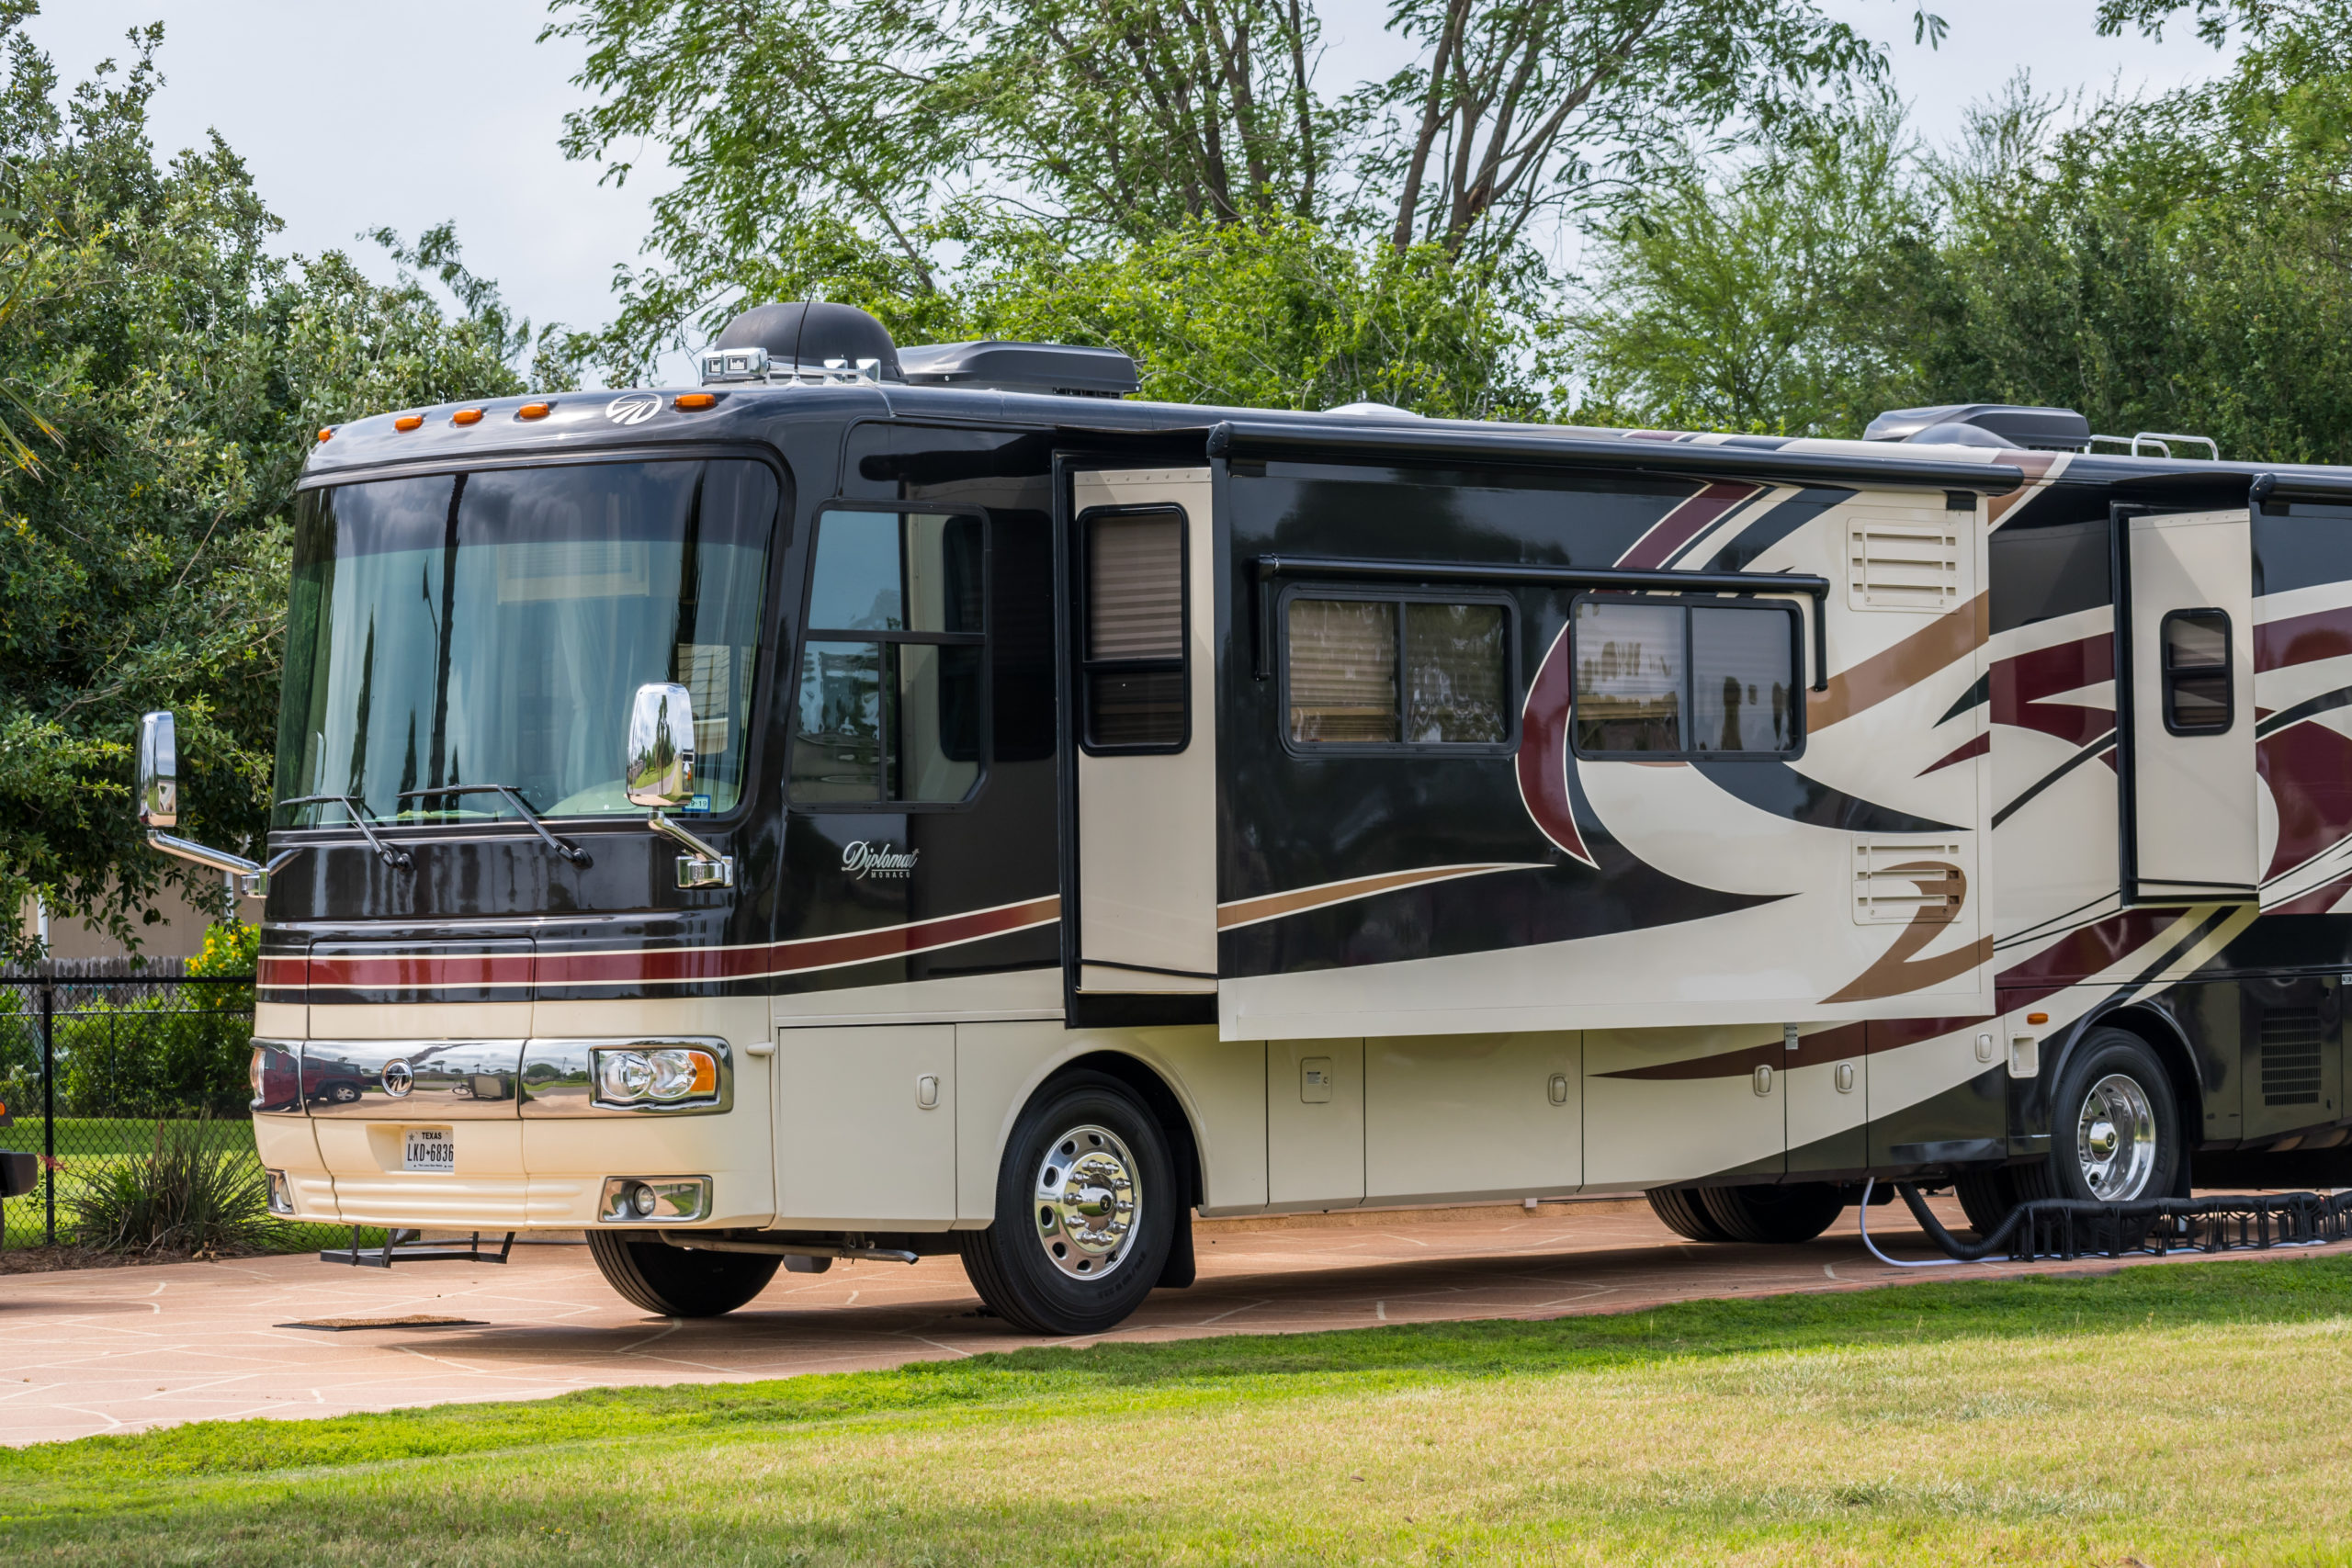 GUIDE TO FINANCING AN RV